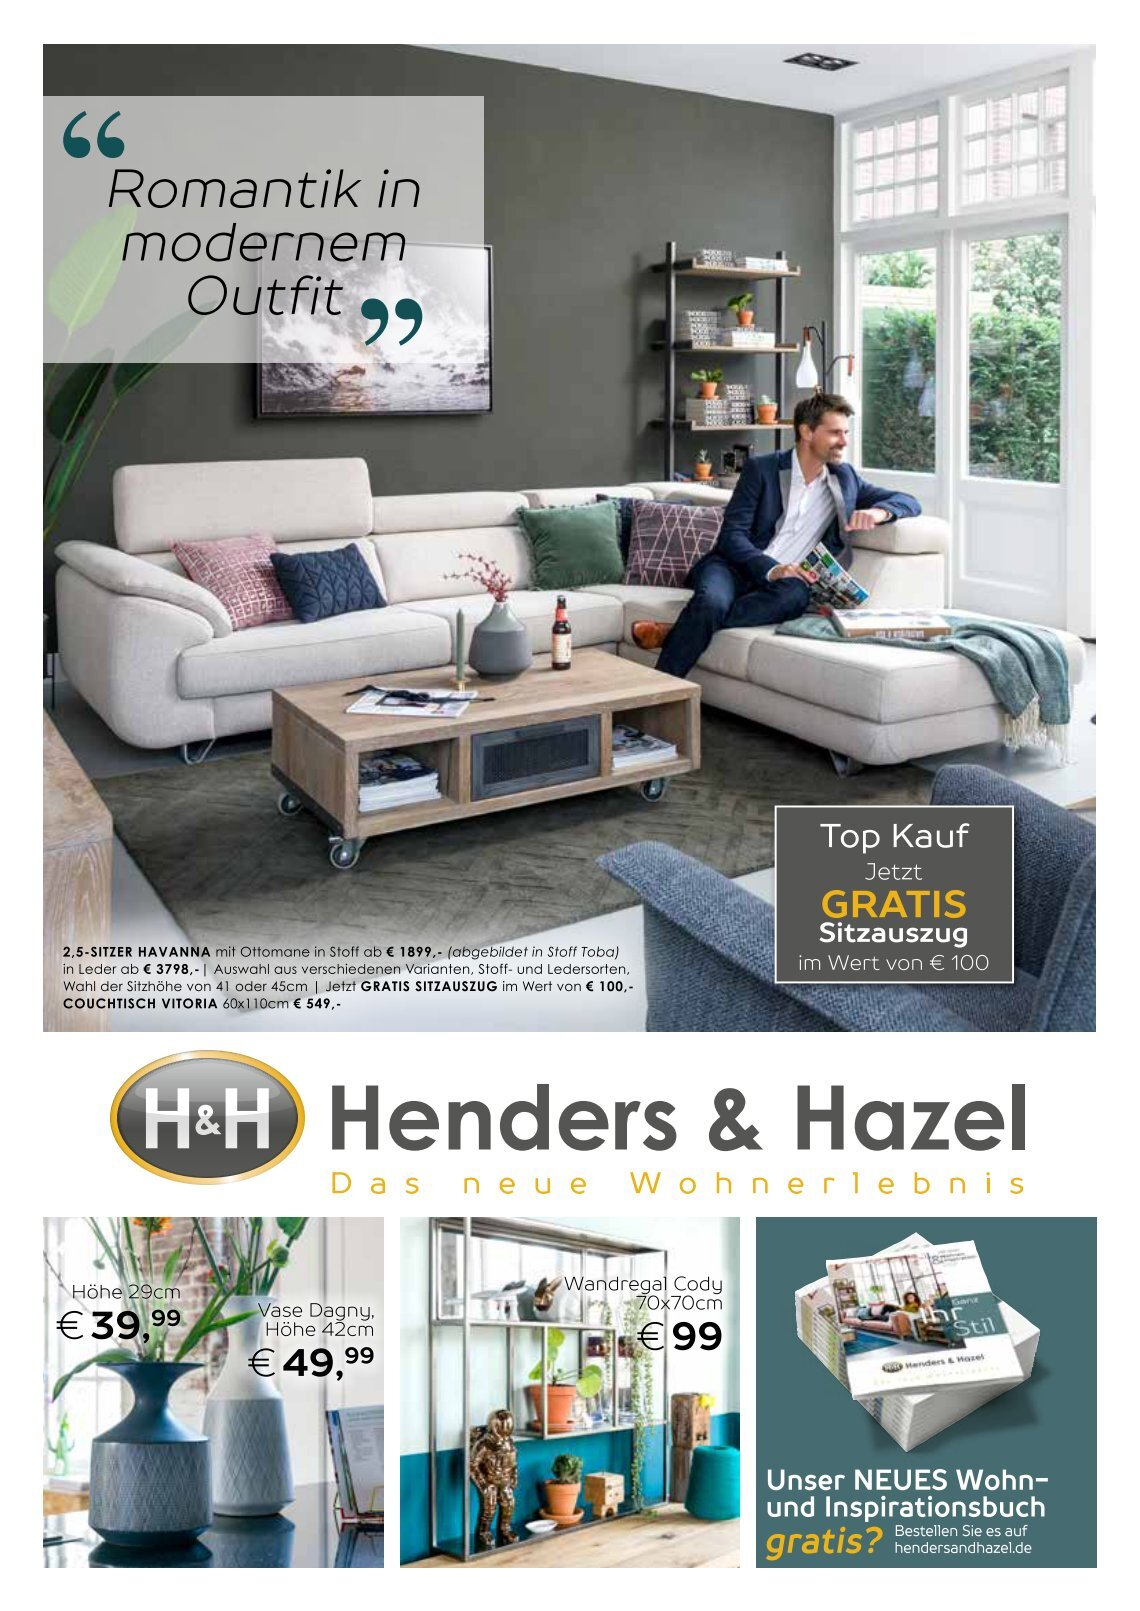 Henders & Hazel Couchtisch 10 Free Magazines From Helue0345